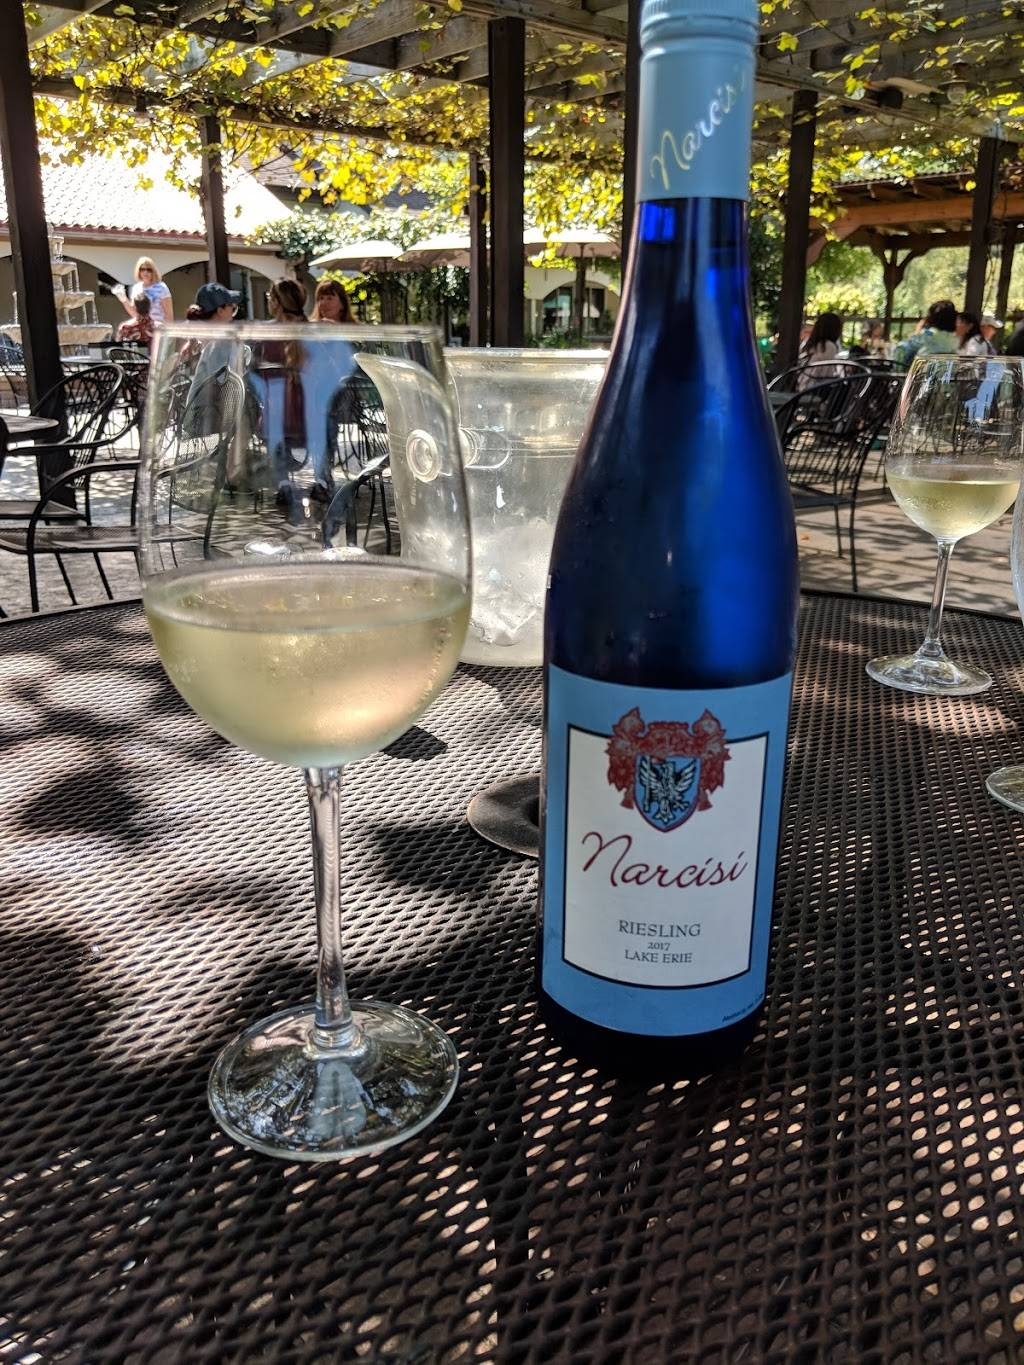 Narcisi Winery | restaurant | 4578 Gibsonia Rd, Gibsonia, PA 15044, USA | 7244444744 OR +1 724-444-4744